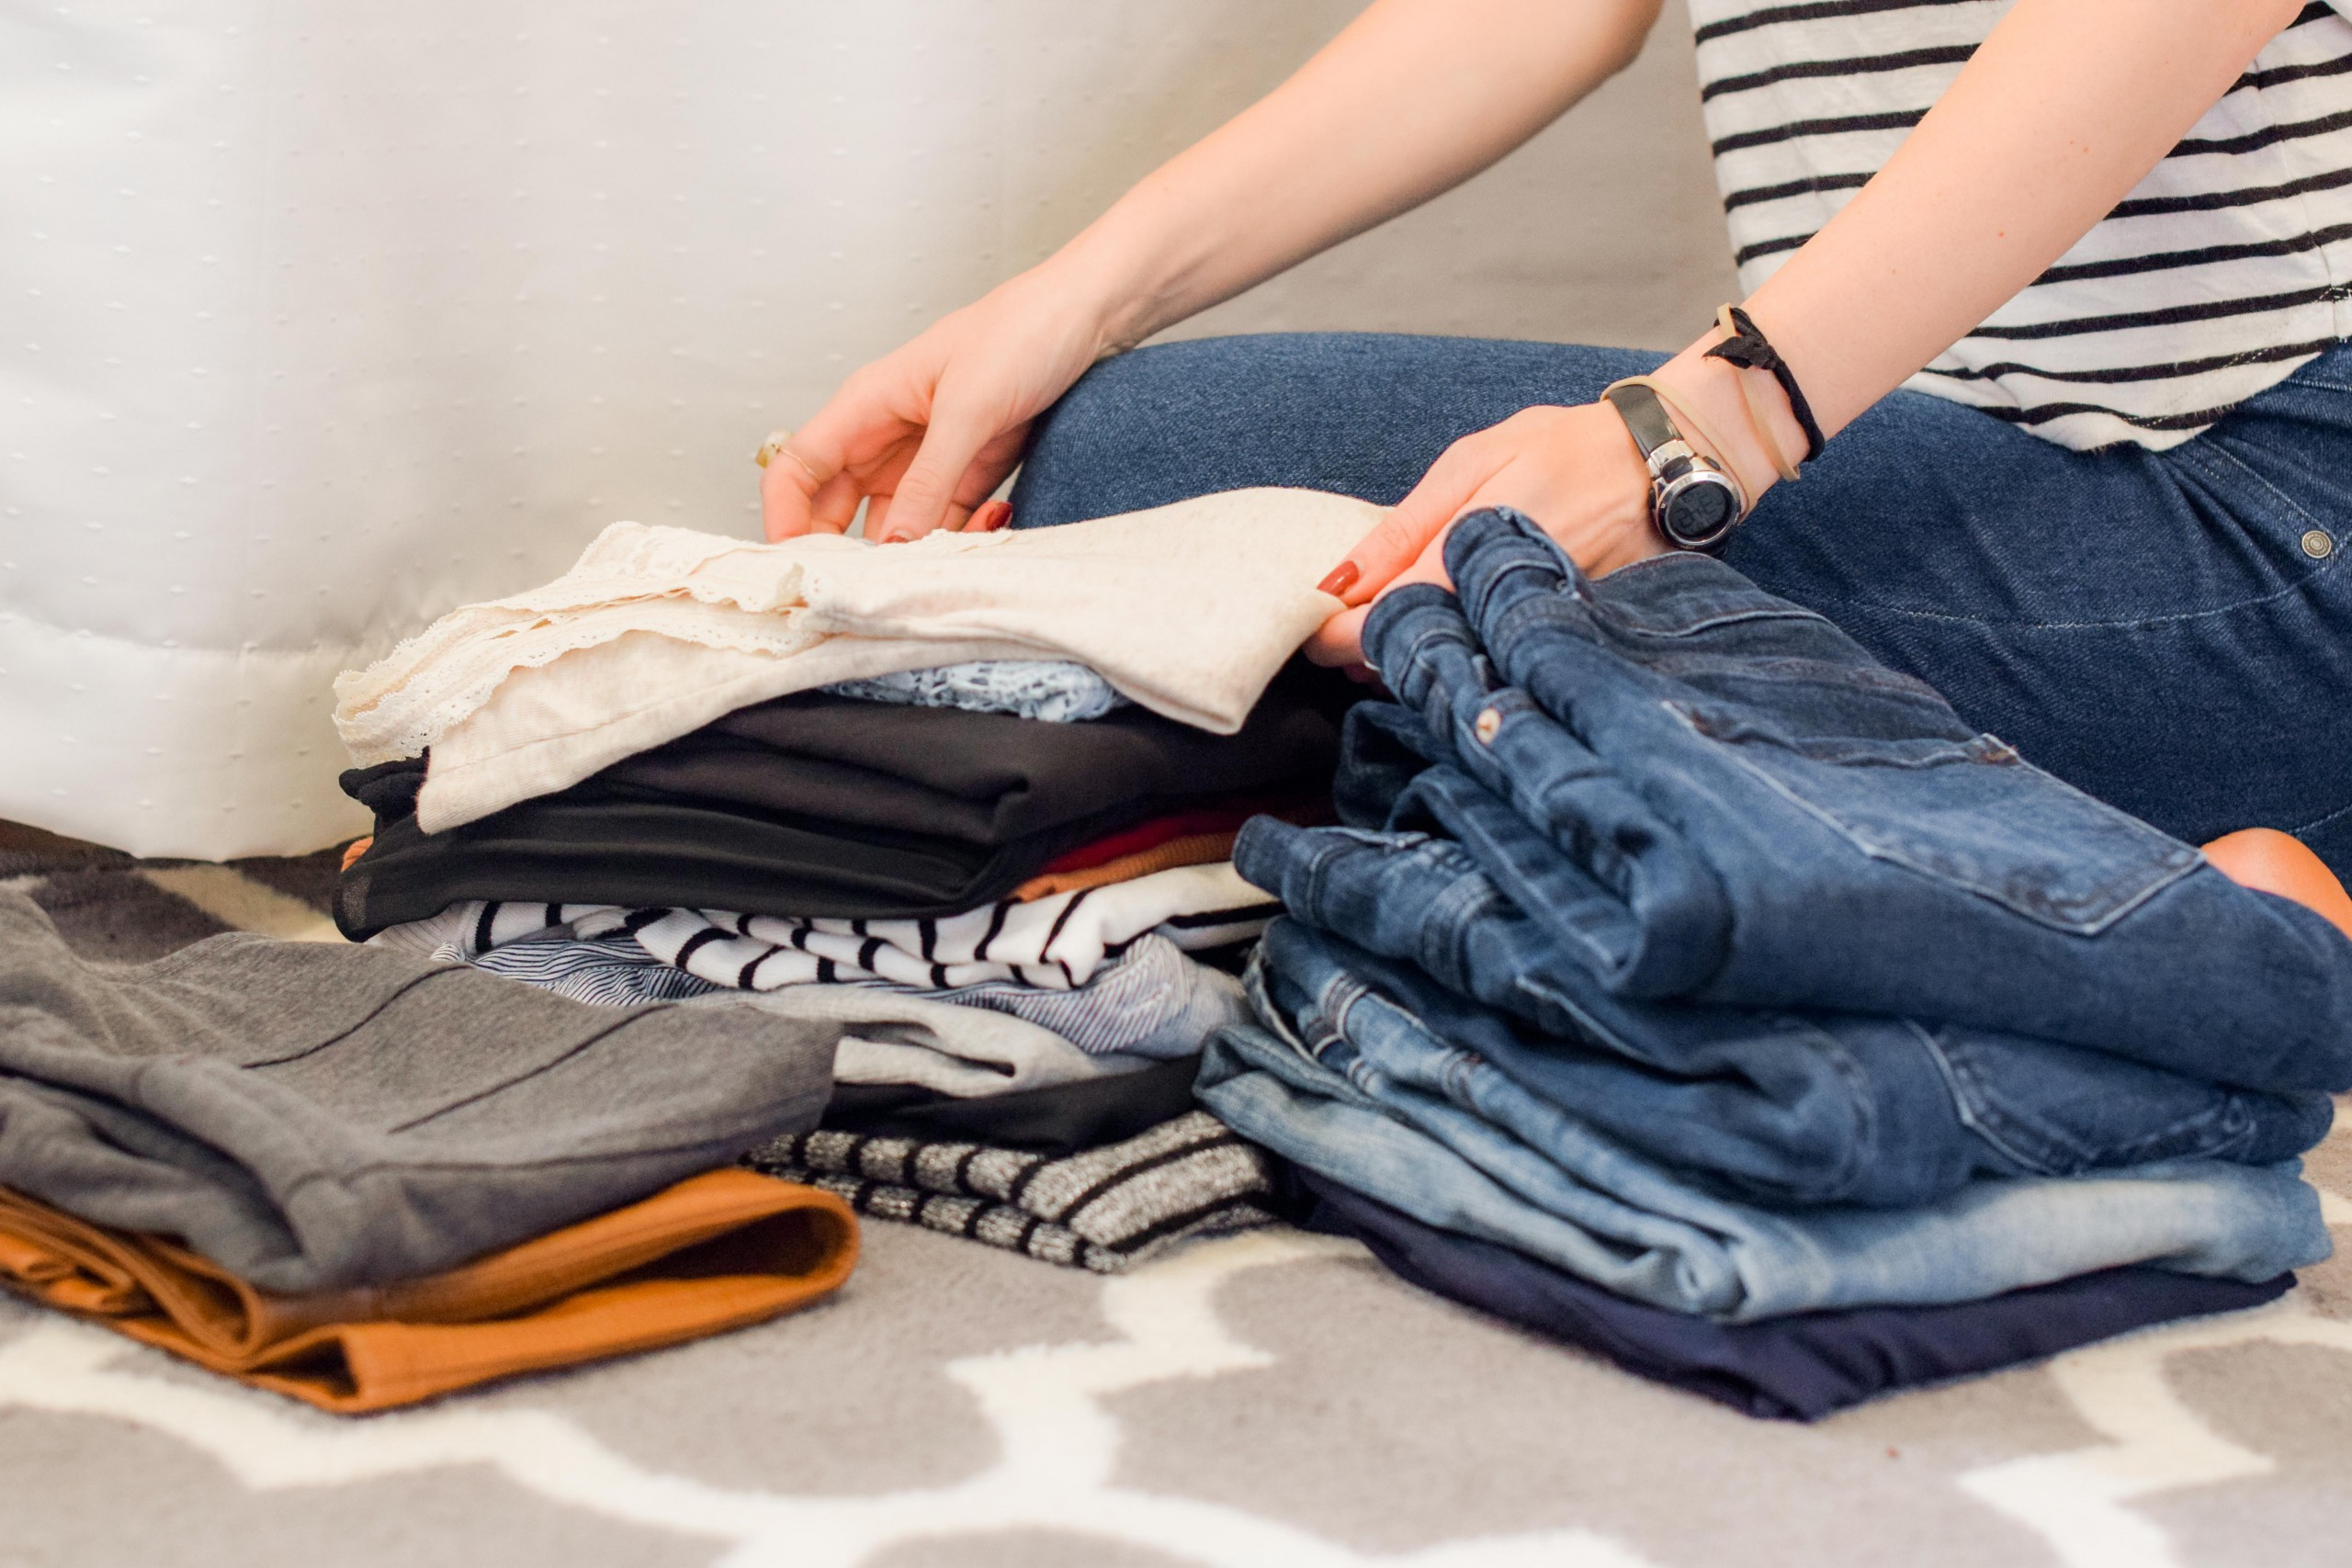 Person folding and sorting clothes into piles. Shirts and Jeans.